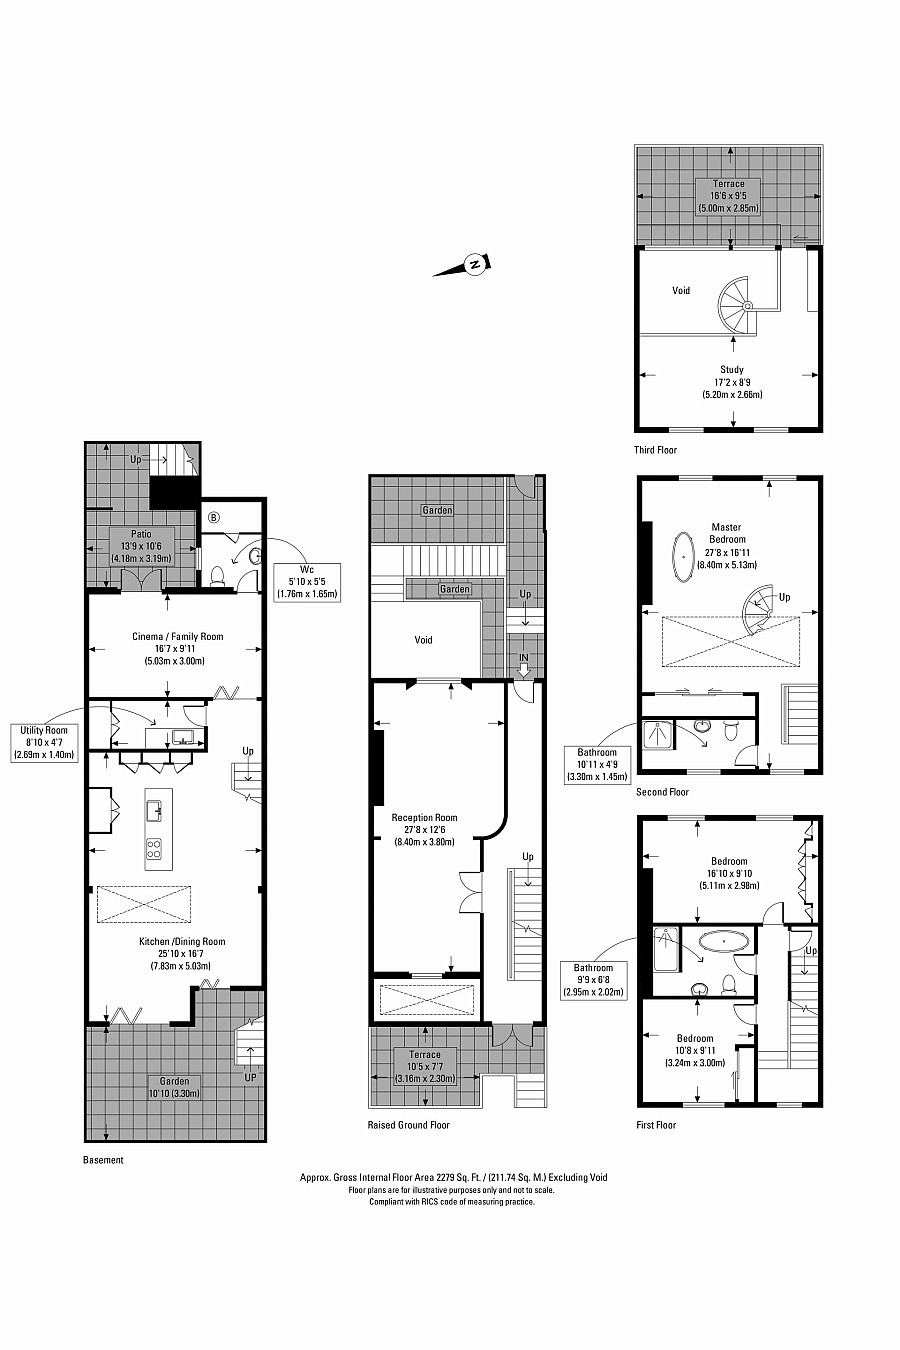 Floor plan of the remodeled Victorian mid-terraced house in London